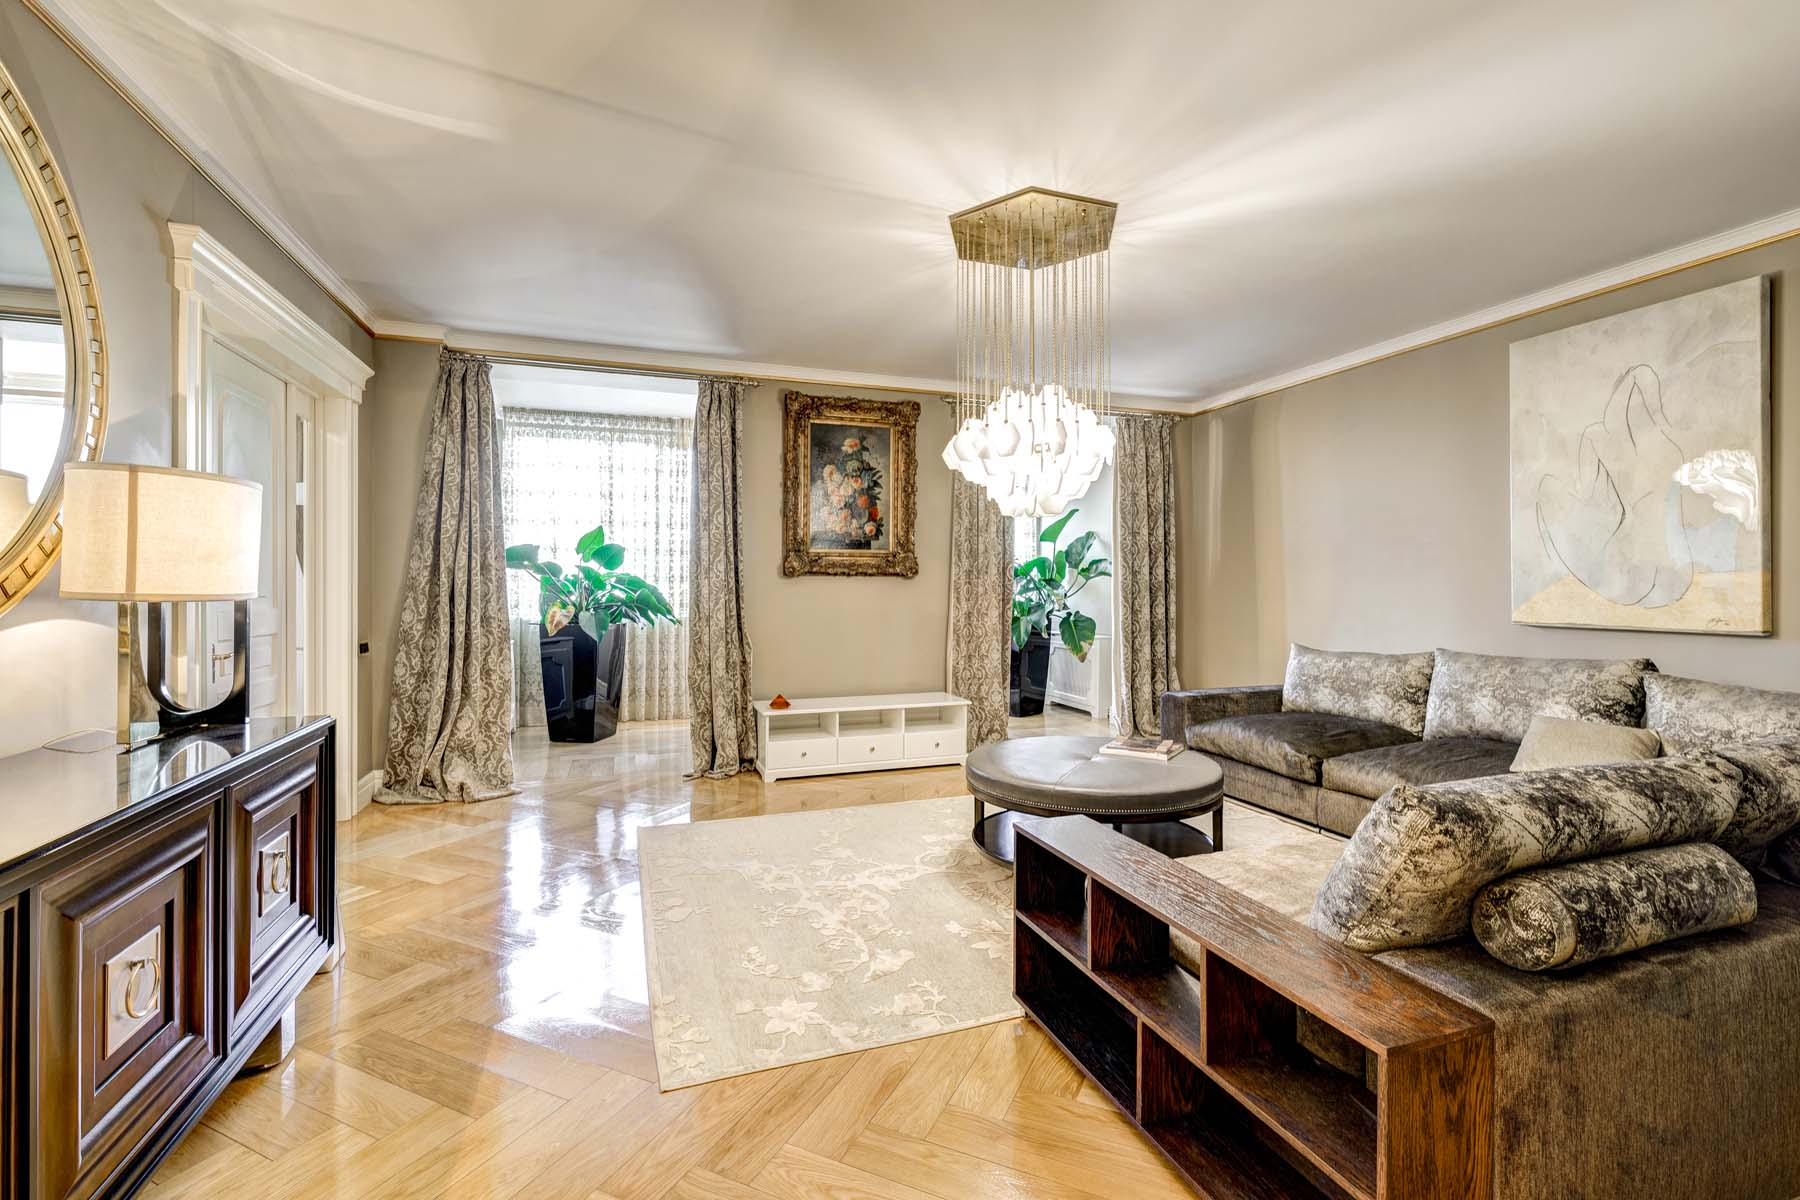 Single Family Homes için Kiralama at The apartment with exclusive repair on Frunze in Camelot Moscow, Moskova Rusya